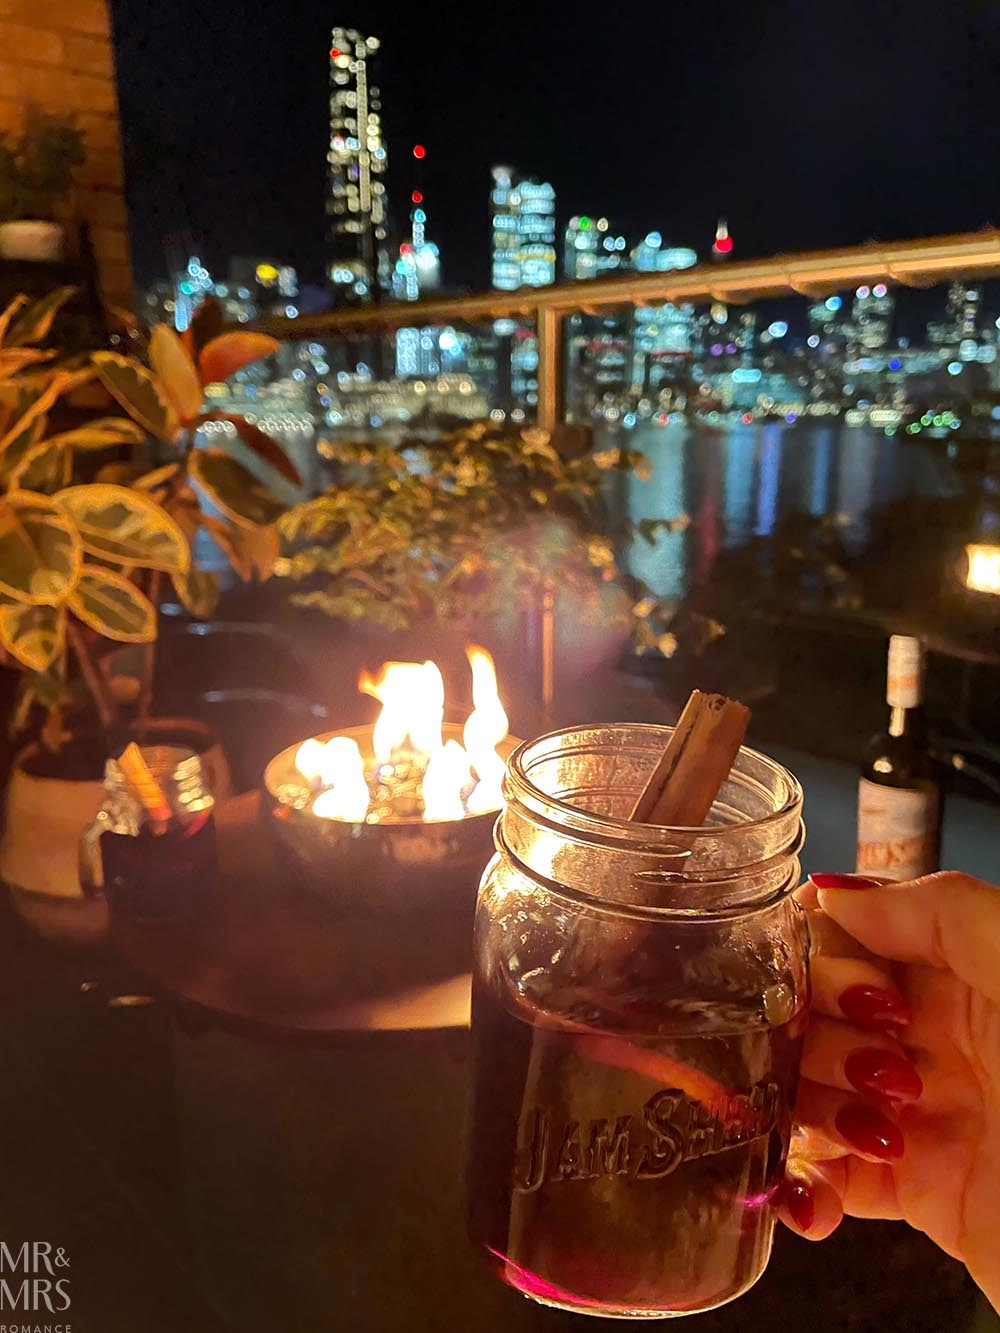 Mulled wine and fire pit